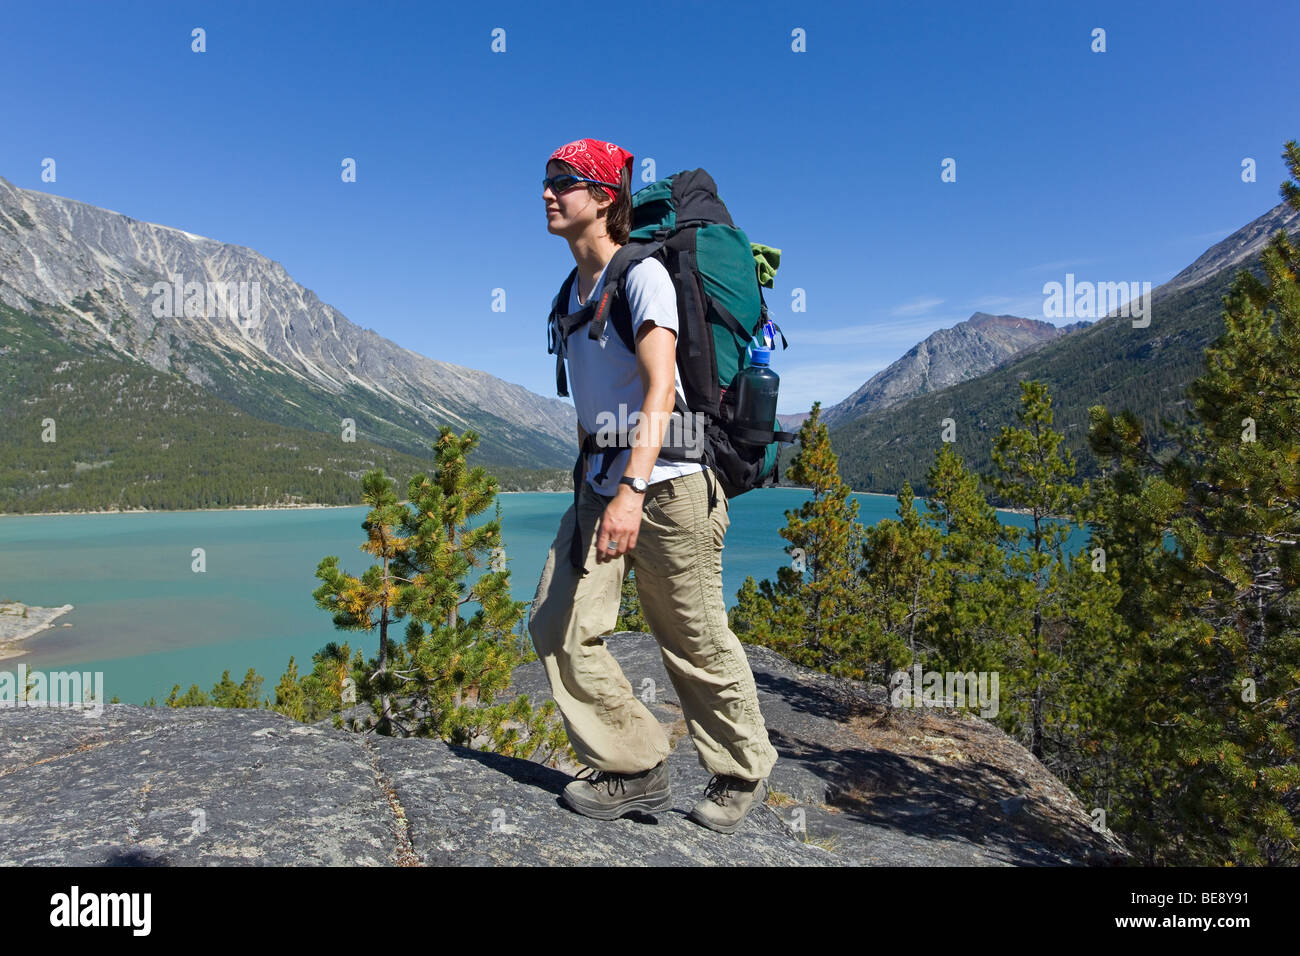 Young woman hiking, backpacking, hiker with backpack, historic Chilkoot Trail, Chilkoot Pass, Lake Bennett behind, - Stock Image